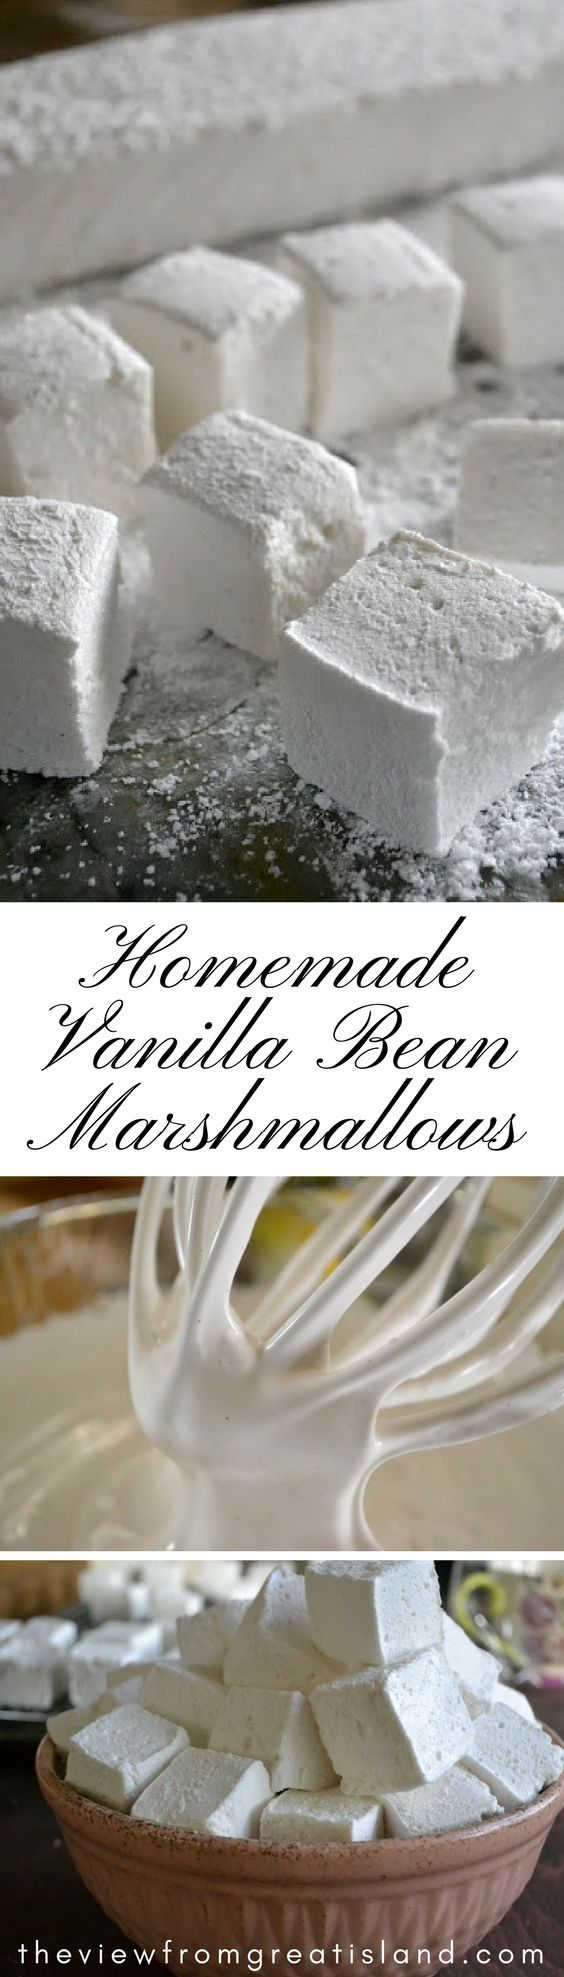 Homemade Vanilla Bean Marshmallows ~ these plush, pillowy marshmallows are amazing, and so easy to make. They'll take your hot cocoa to a whole new level! I will try to find a replacement for the corn syrup. I can replace the vegetable oil with coconut oil.